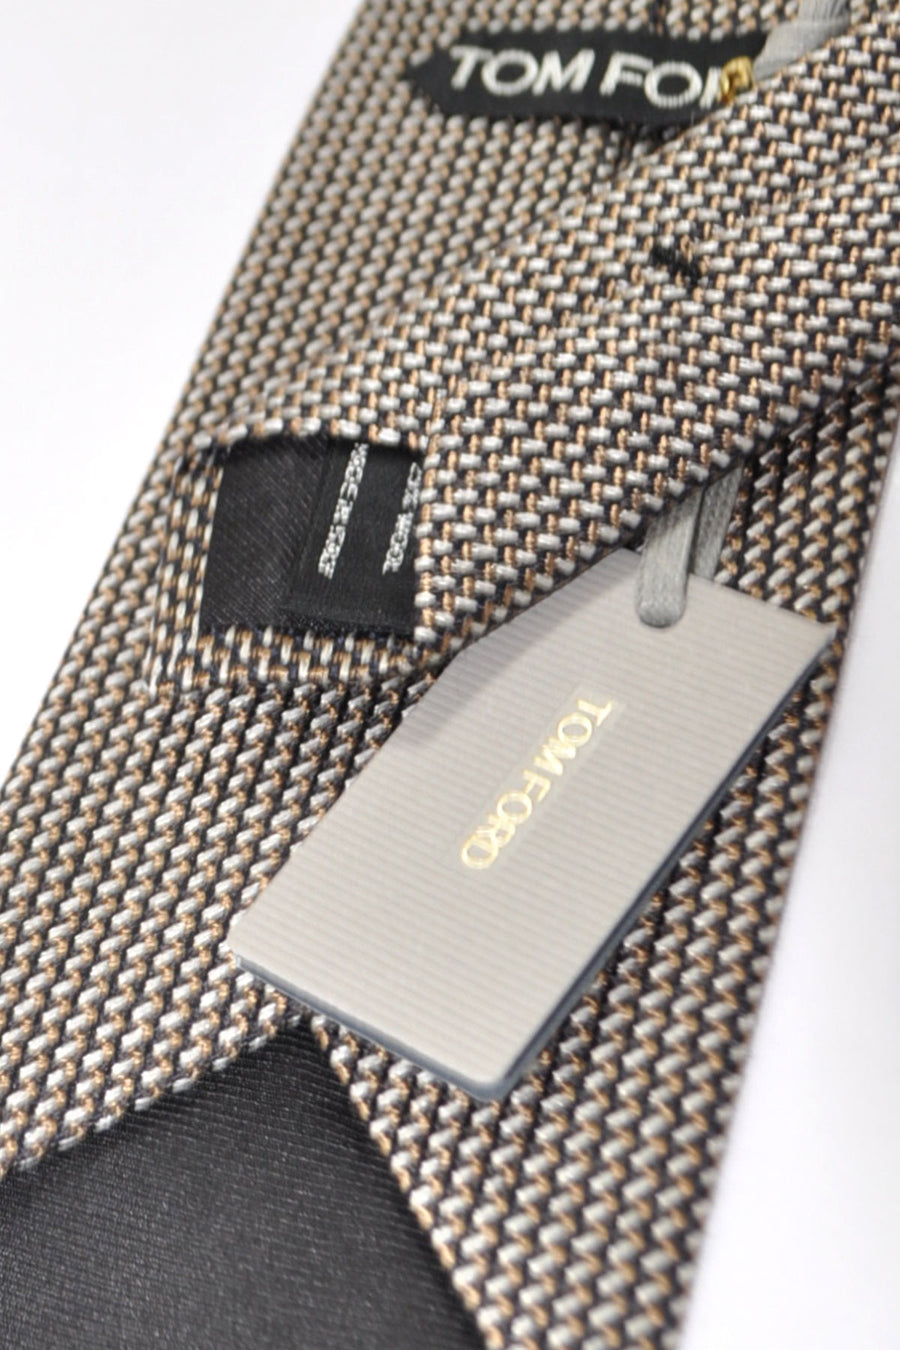 Tom Ford Tie Taupe Silver Black Design